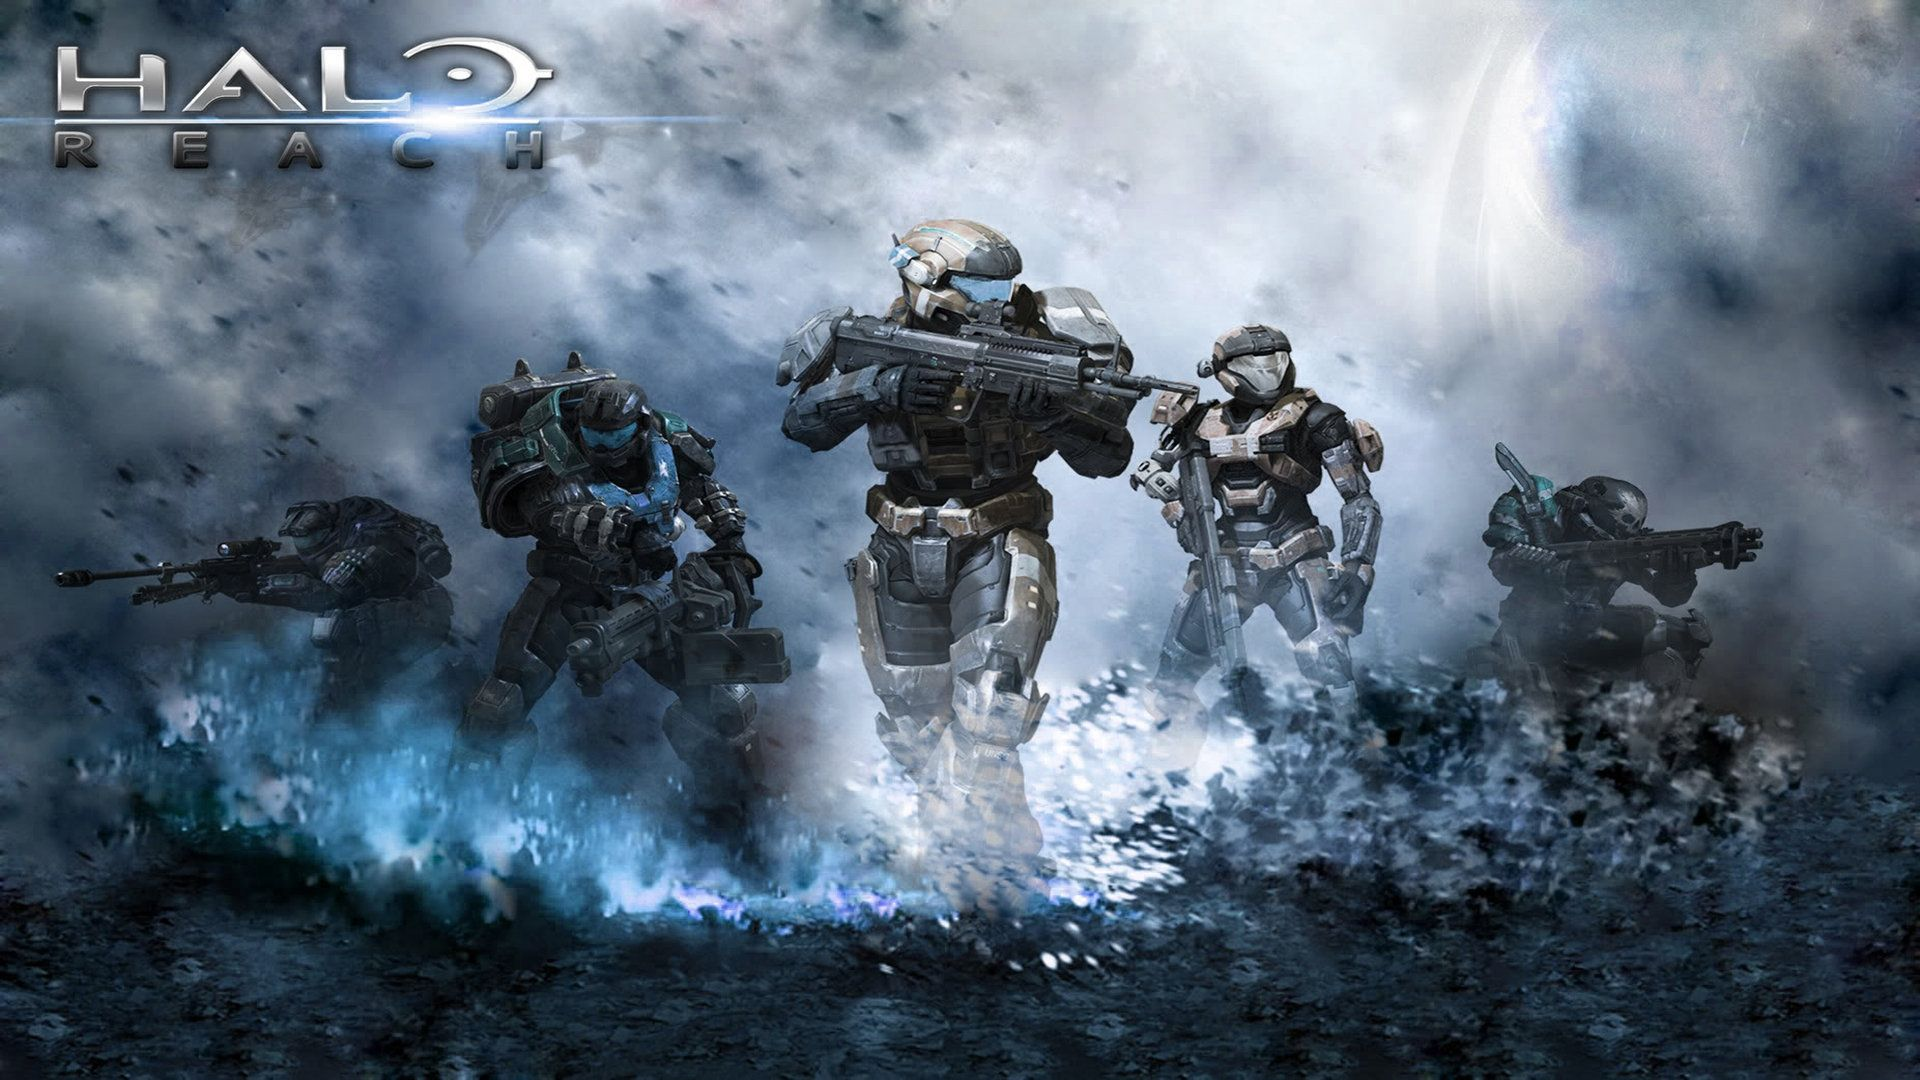 12K Halo Wallpapers - Top Free 12K Halo Backgrounds